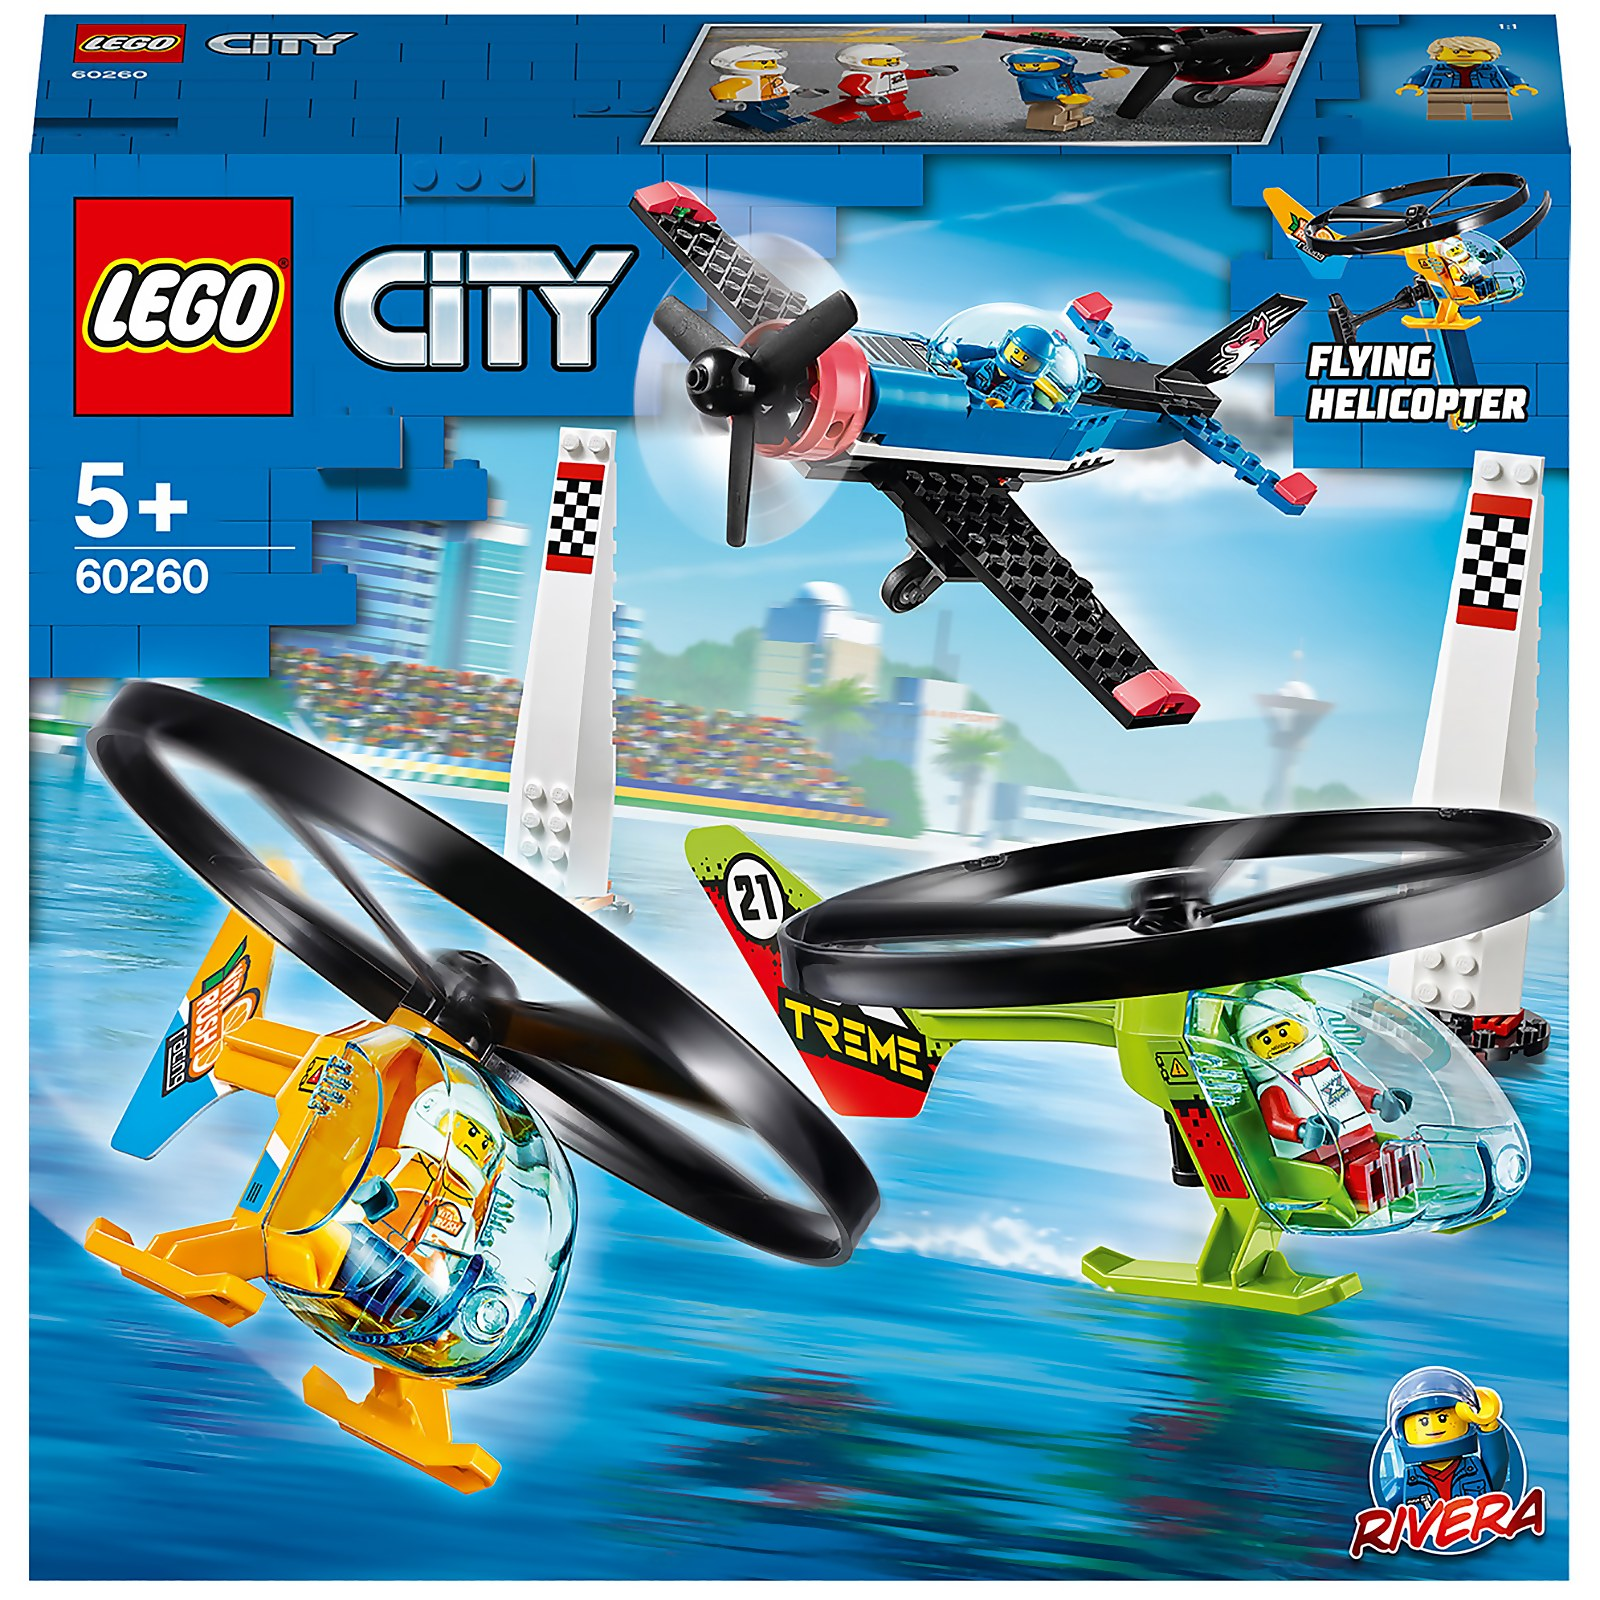 Image of LEGO City Airport Air Race Toy Plane & Helicopters Set - 60260